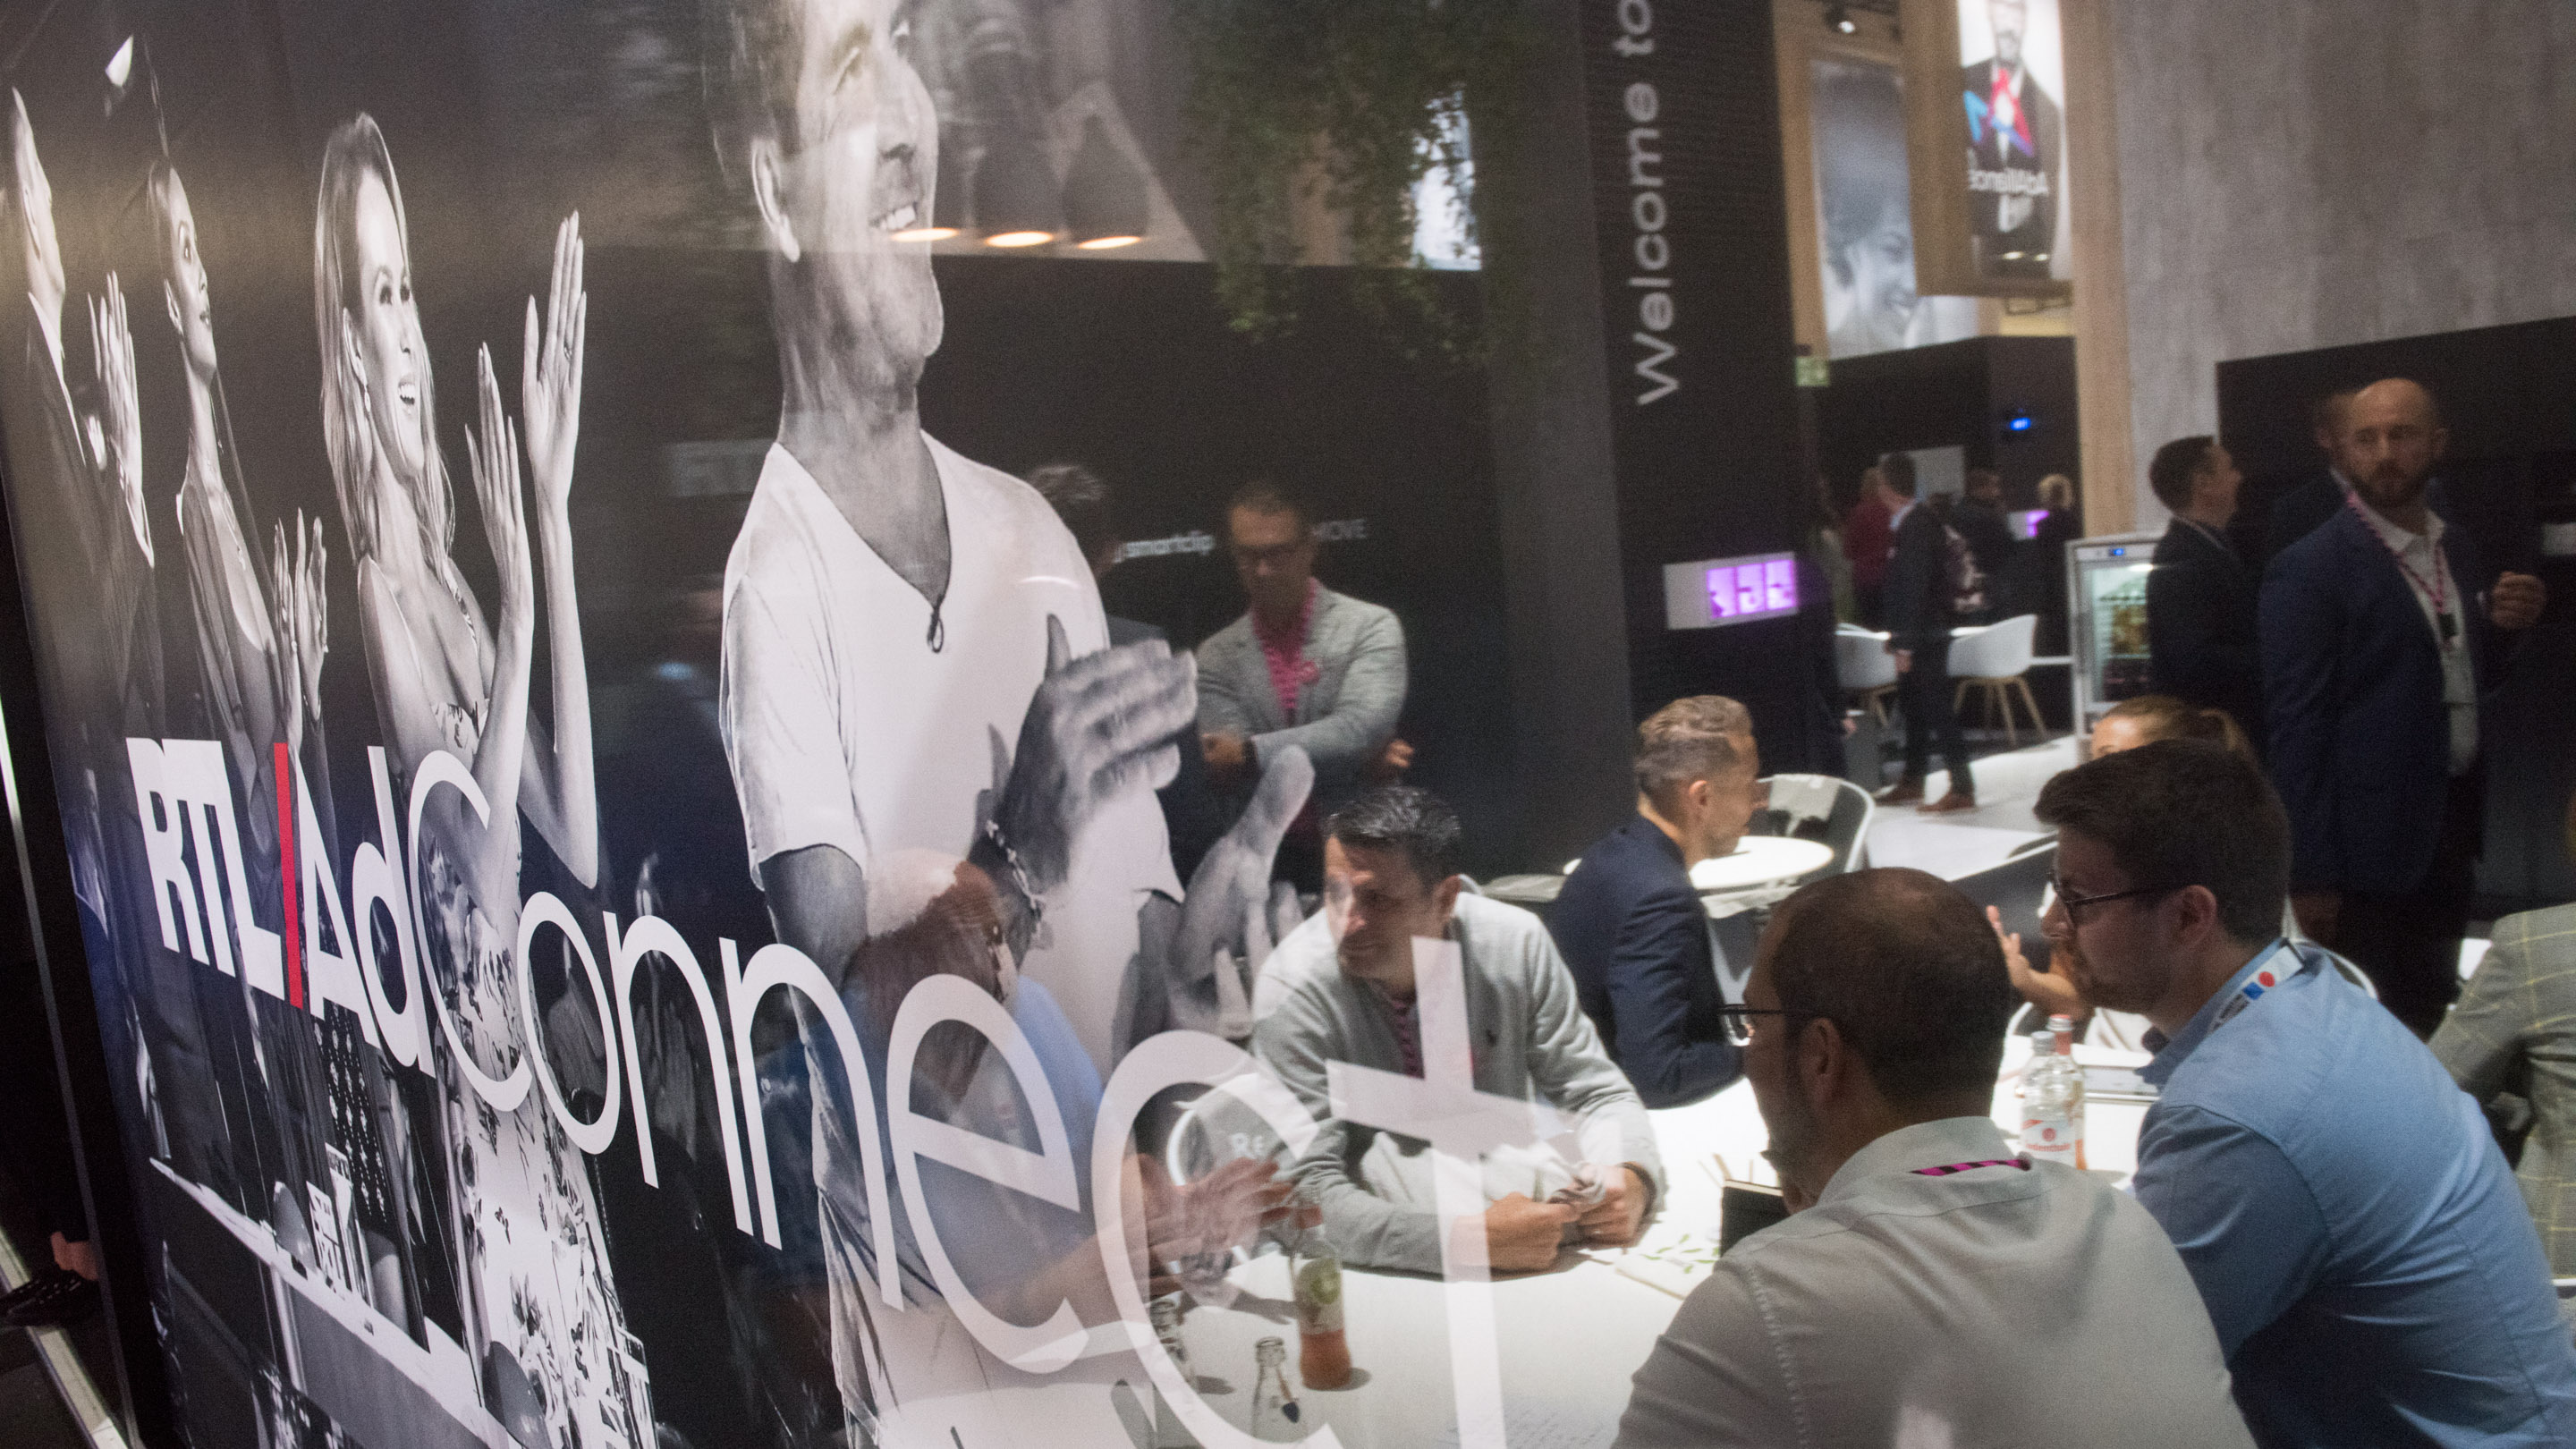 Stand: BTL AdConnect, Halle 8, DMEXCO 2019